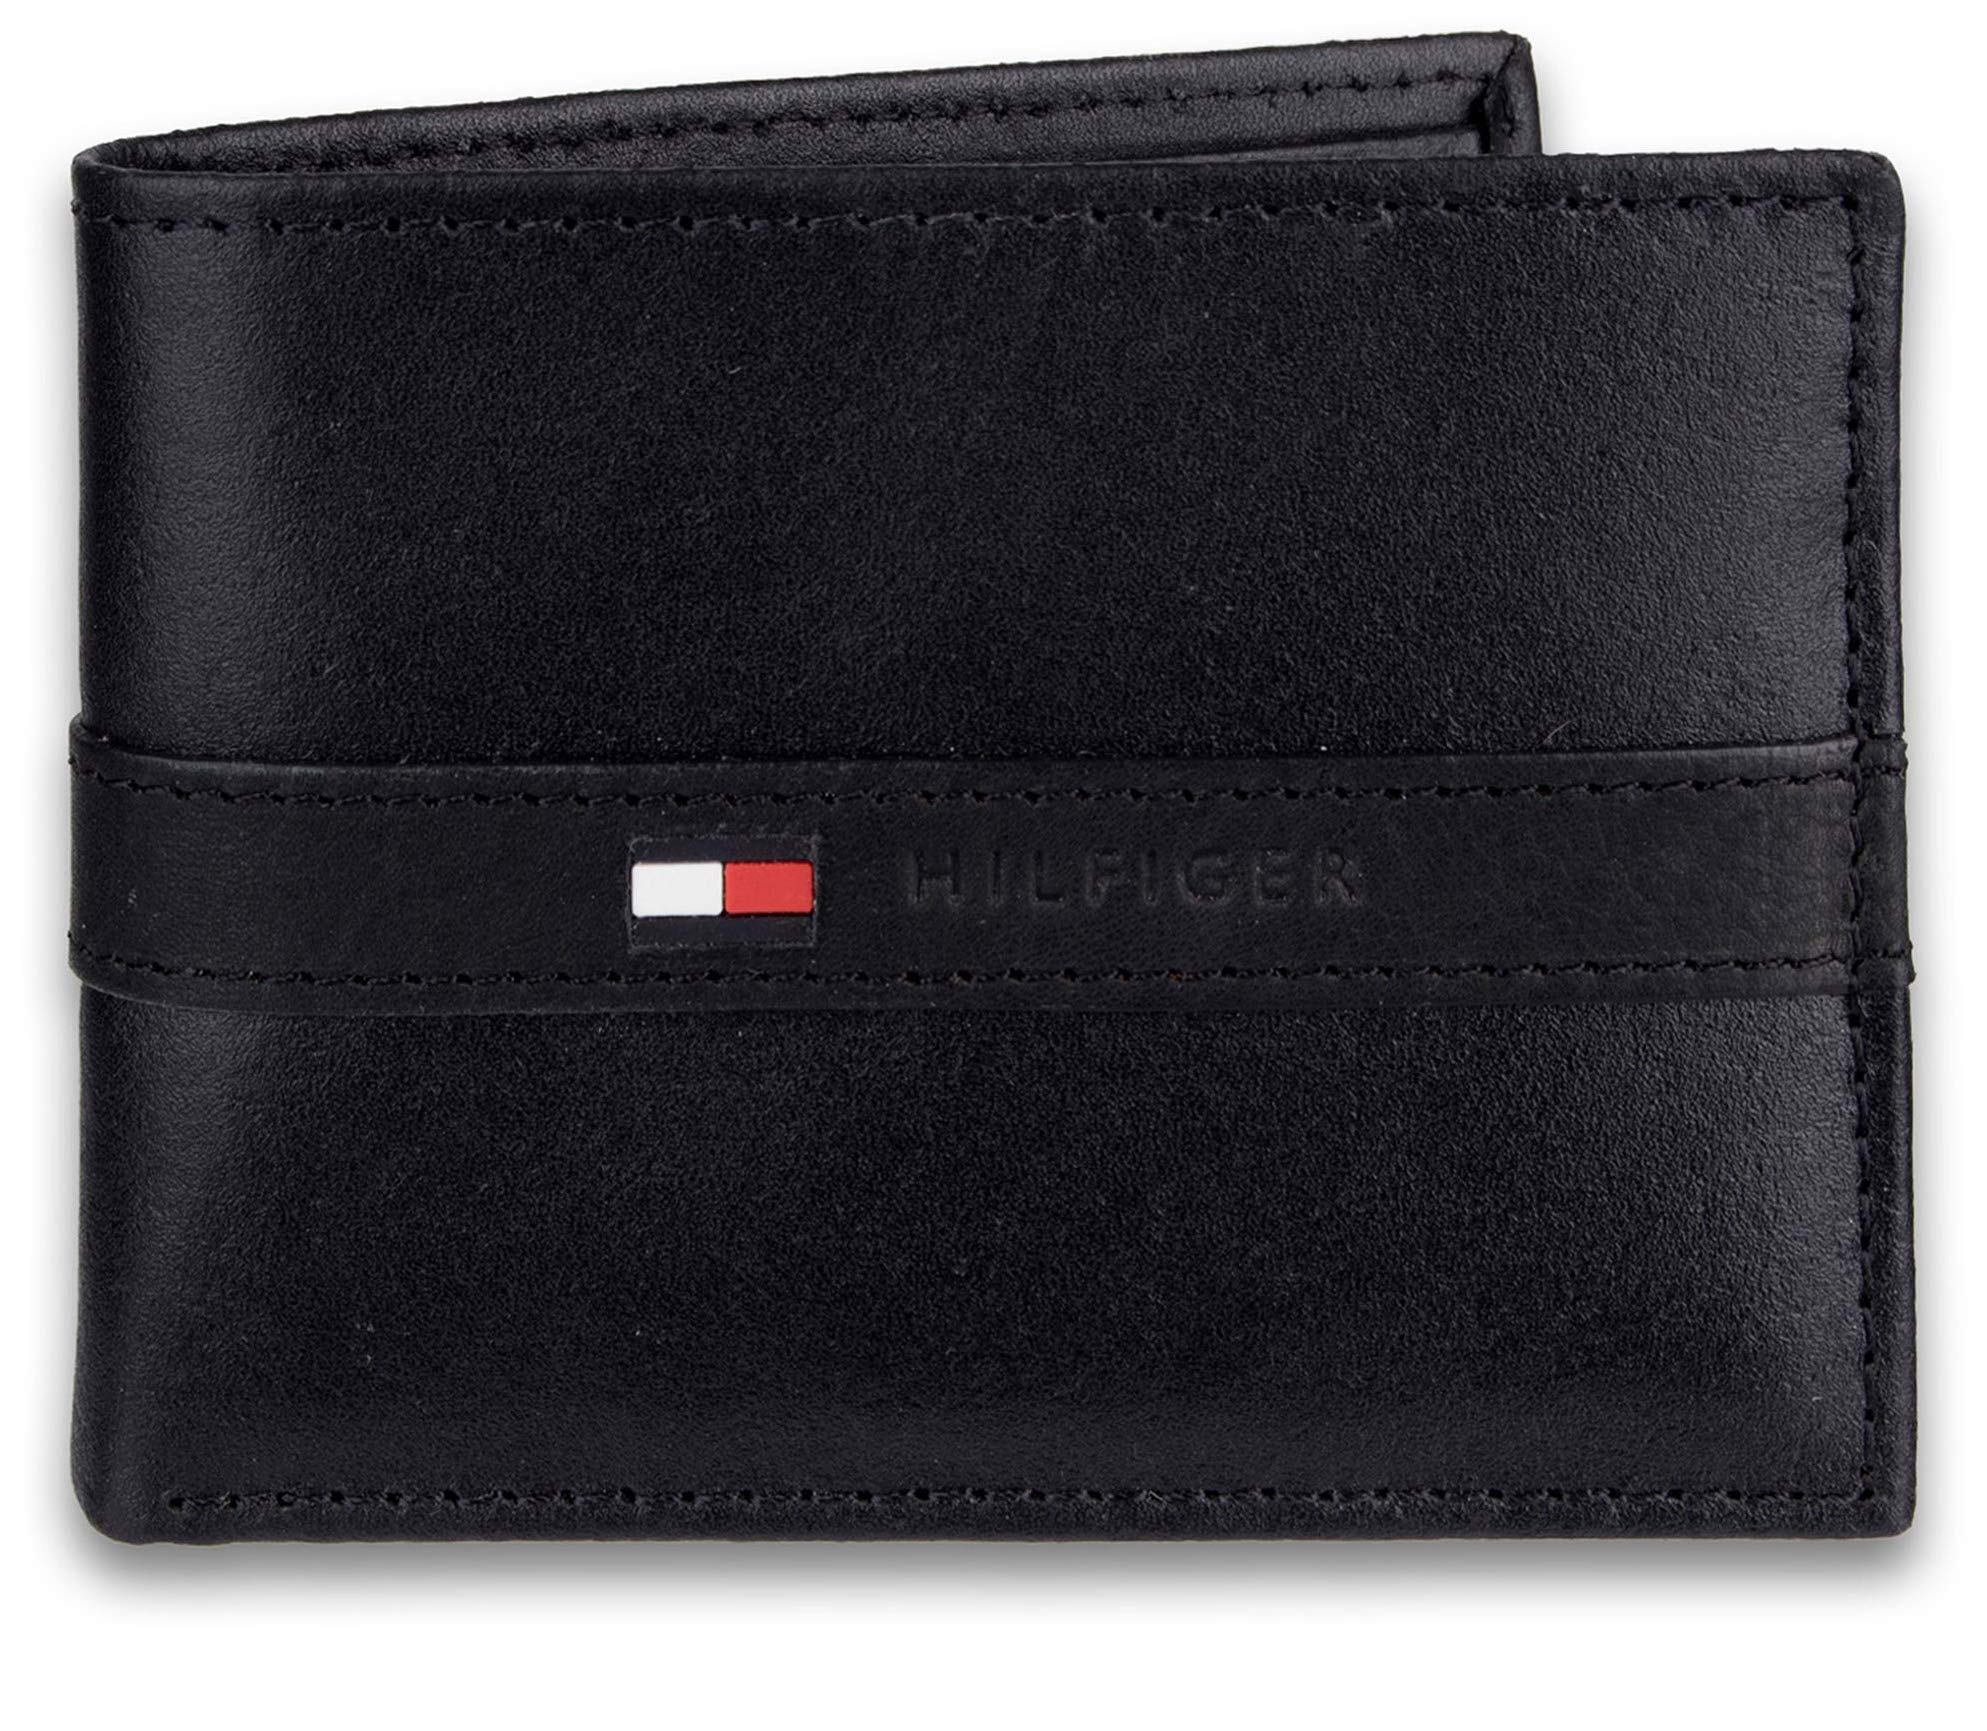 Tommy Hilfiger Men's Leather Wallet - Thin Sleek Casual Bifold with 6 Credit Card Pockets and Removable ID Window, Black by Tommy Hilfiger